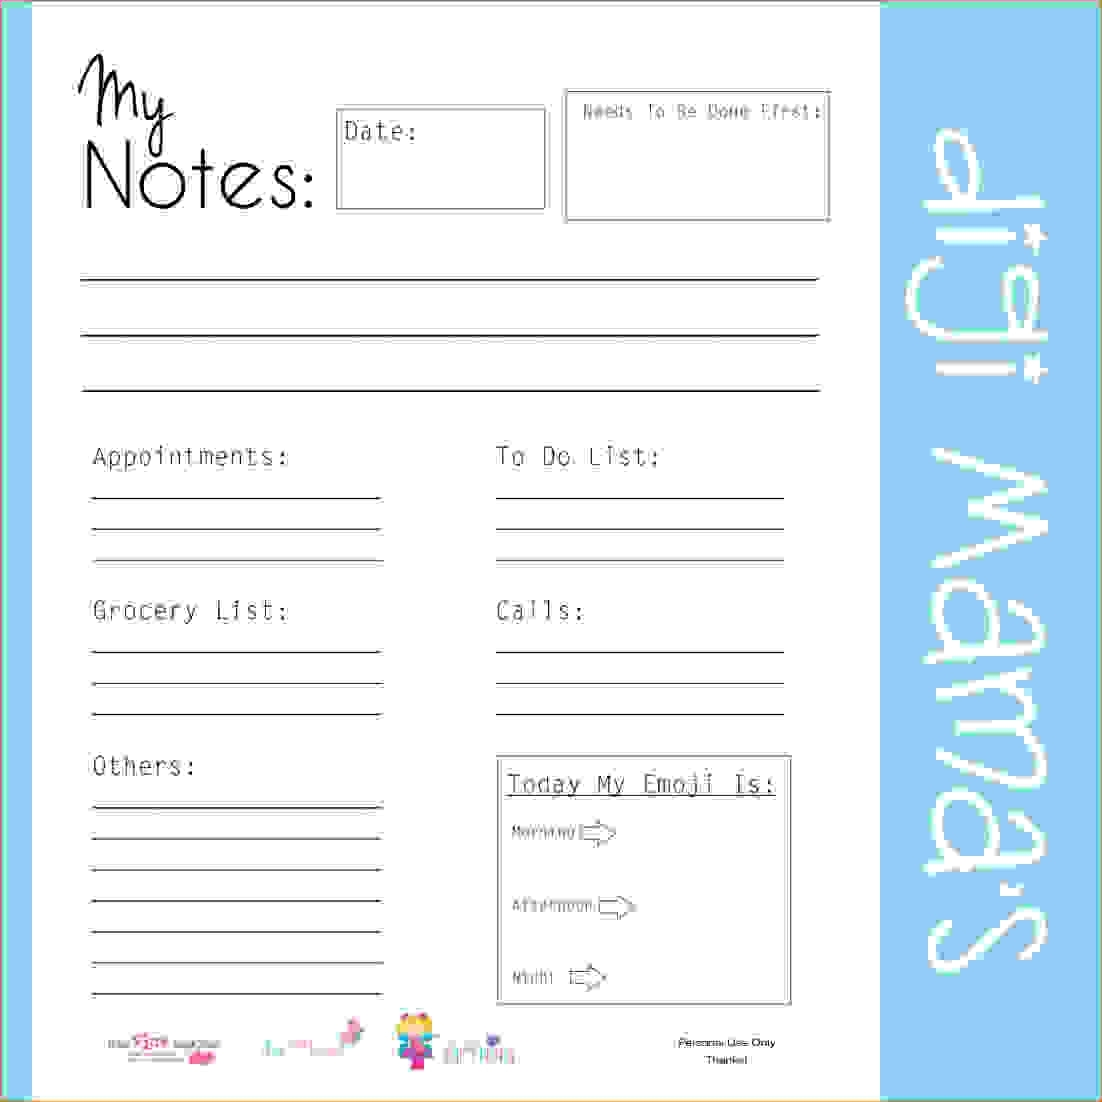 Daily Planner Template Excel Free Weekly Schedule Doc Week Day   Smorad for Free Printable Daily Planner Page Half